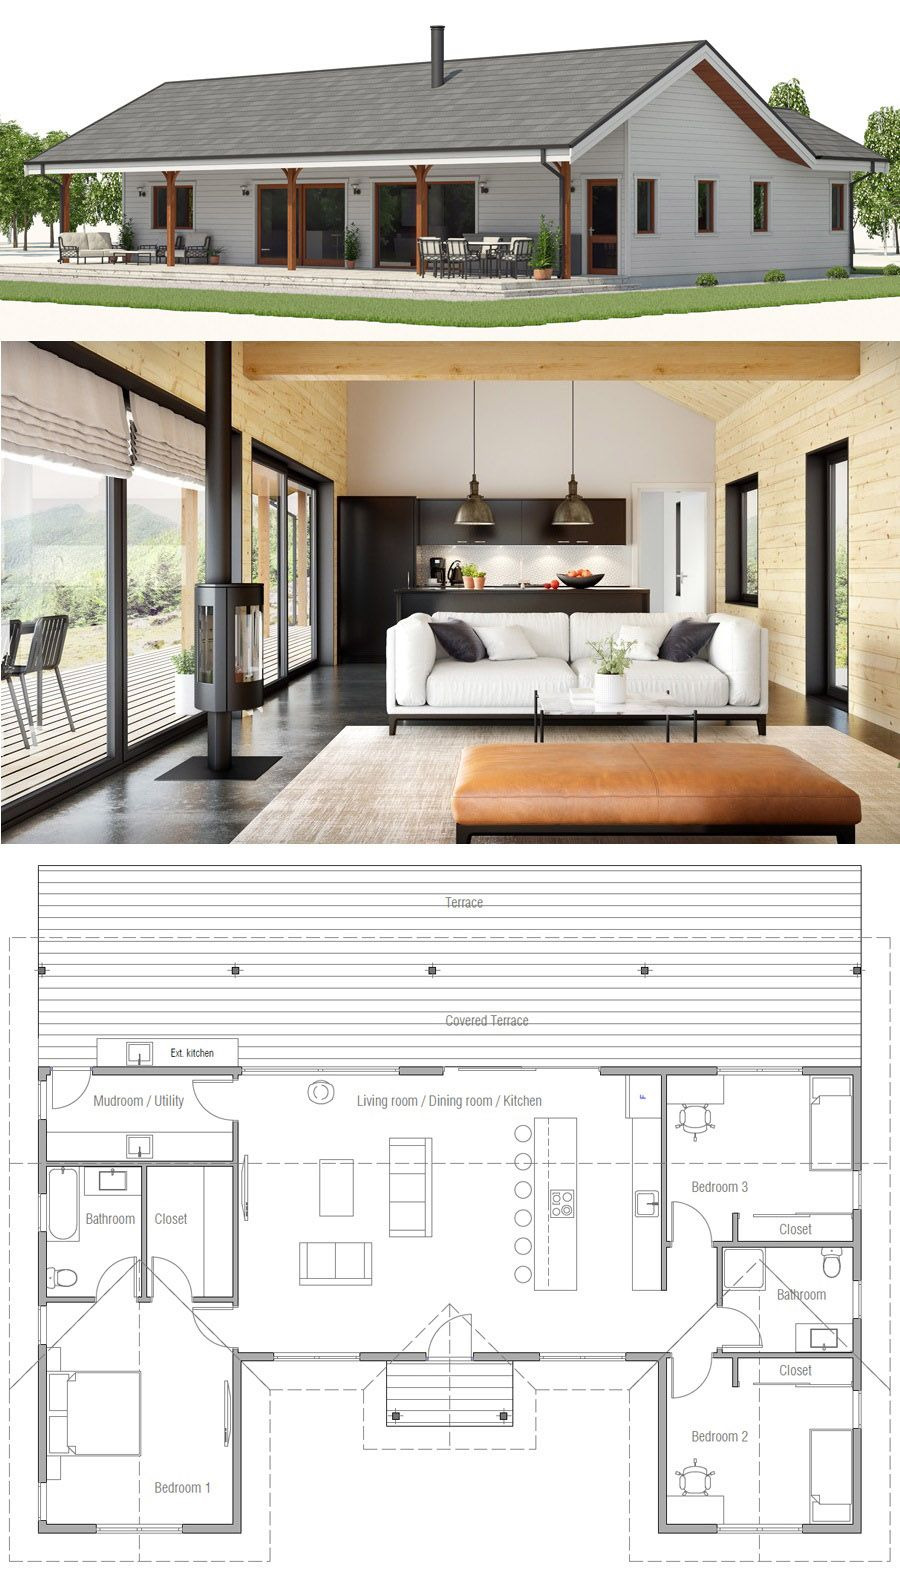 Small Retirement House Plans Fresh Small House Plans House Plans Smallhouseplans Houseplans